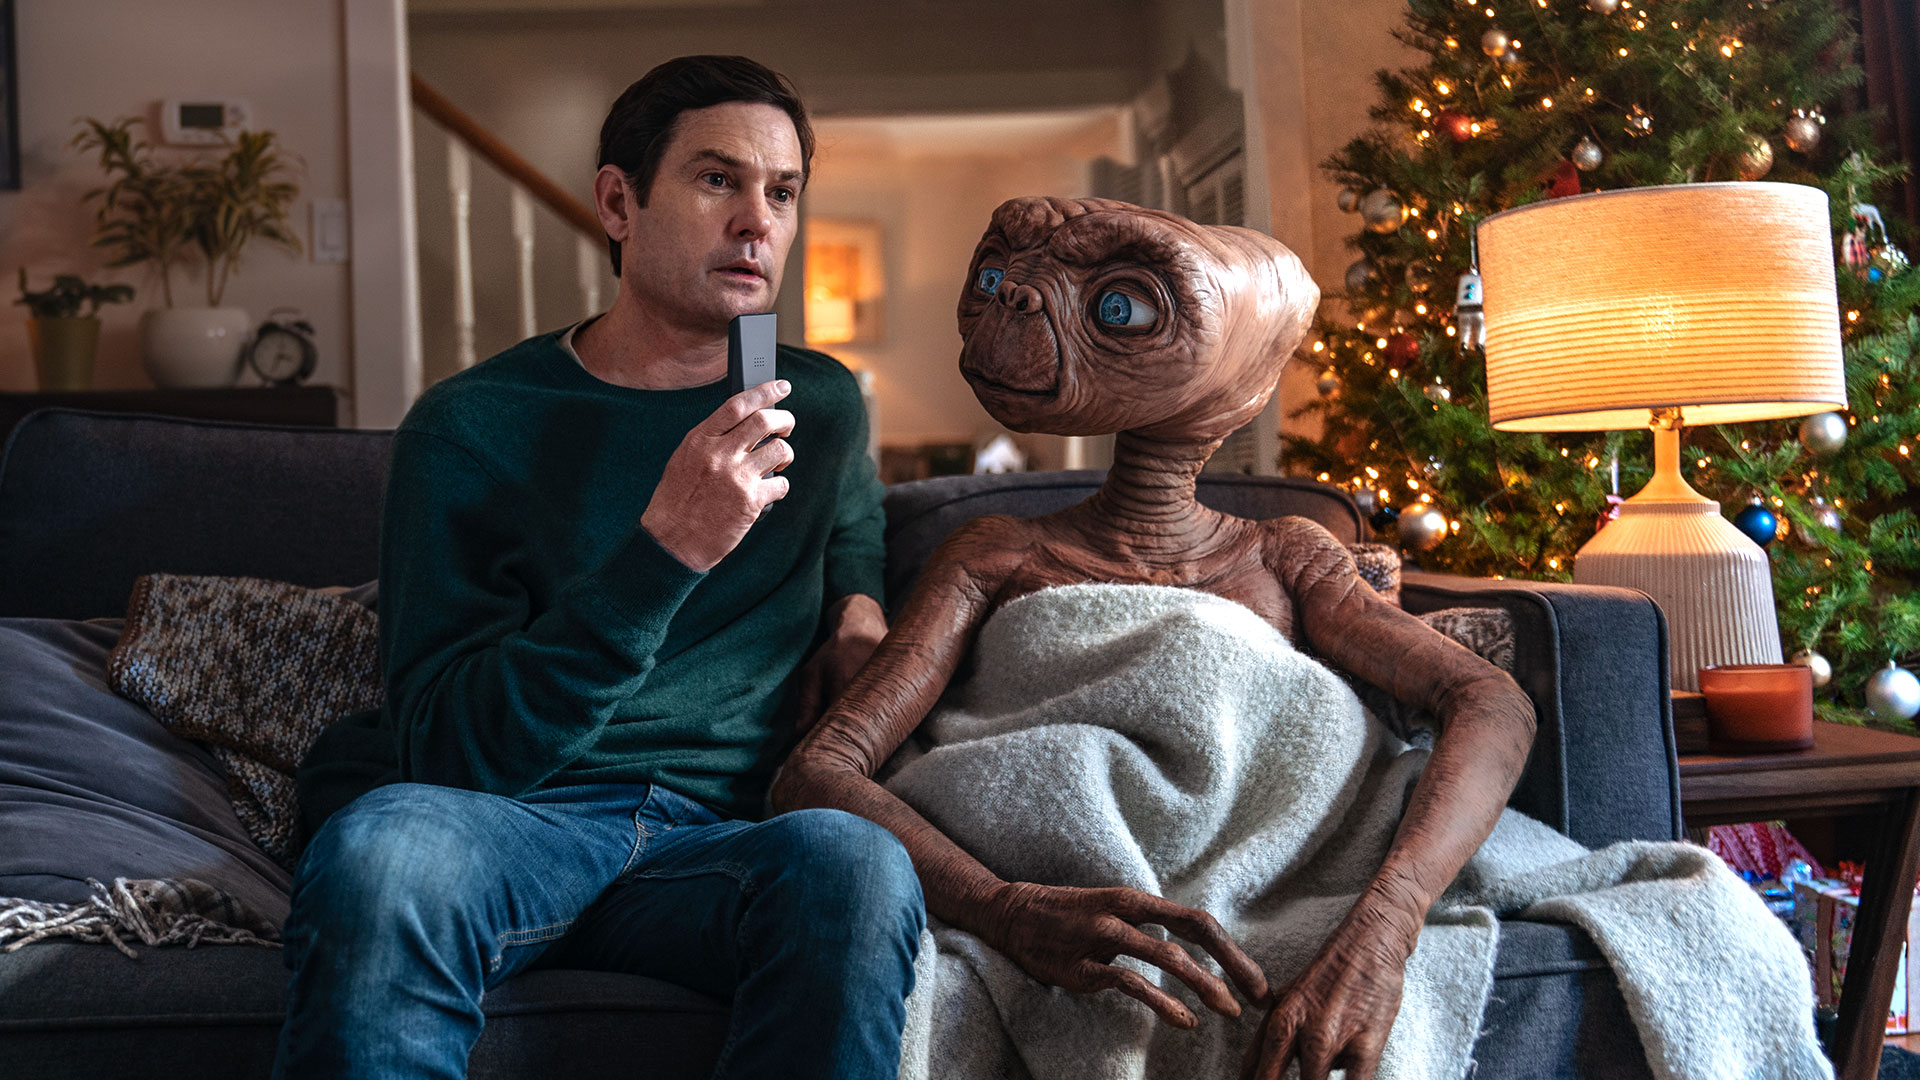 A Touching ET Christmas Commercial Reunites Two Old Friends